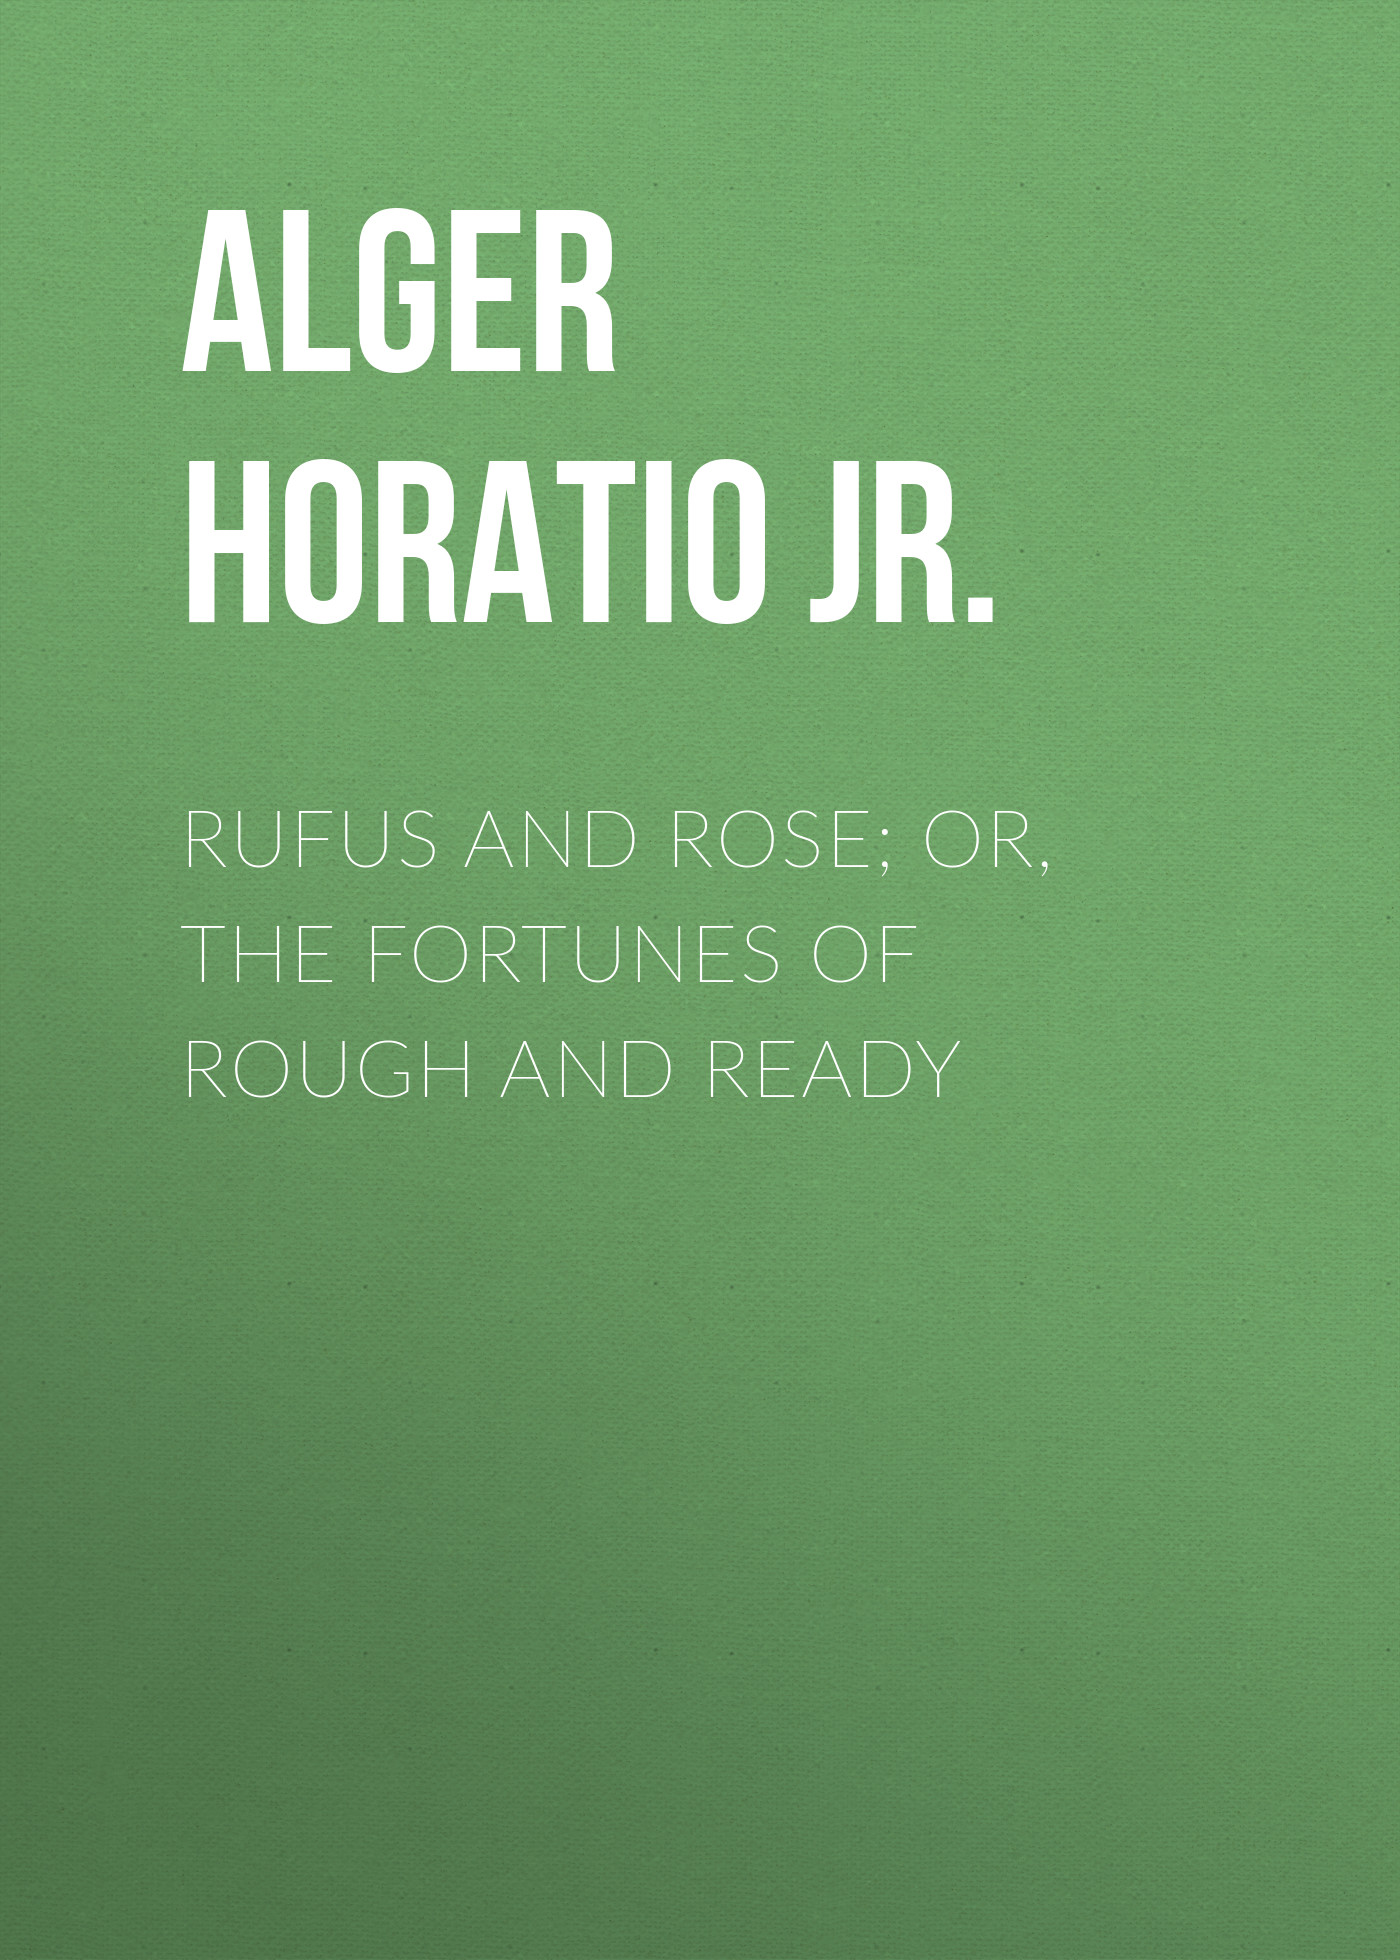 лучшая цена Alger Horatio Jr. Rufus and Rose; Or, The Fortunes of Rough and Ready